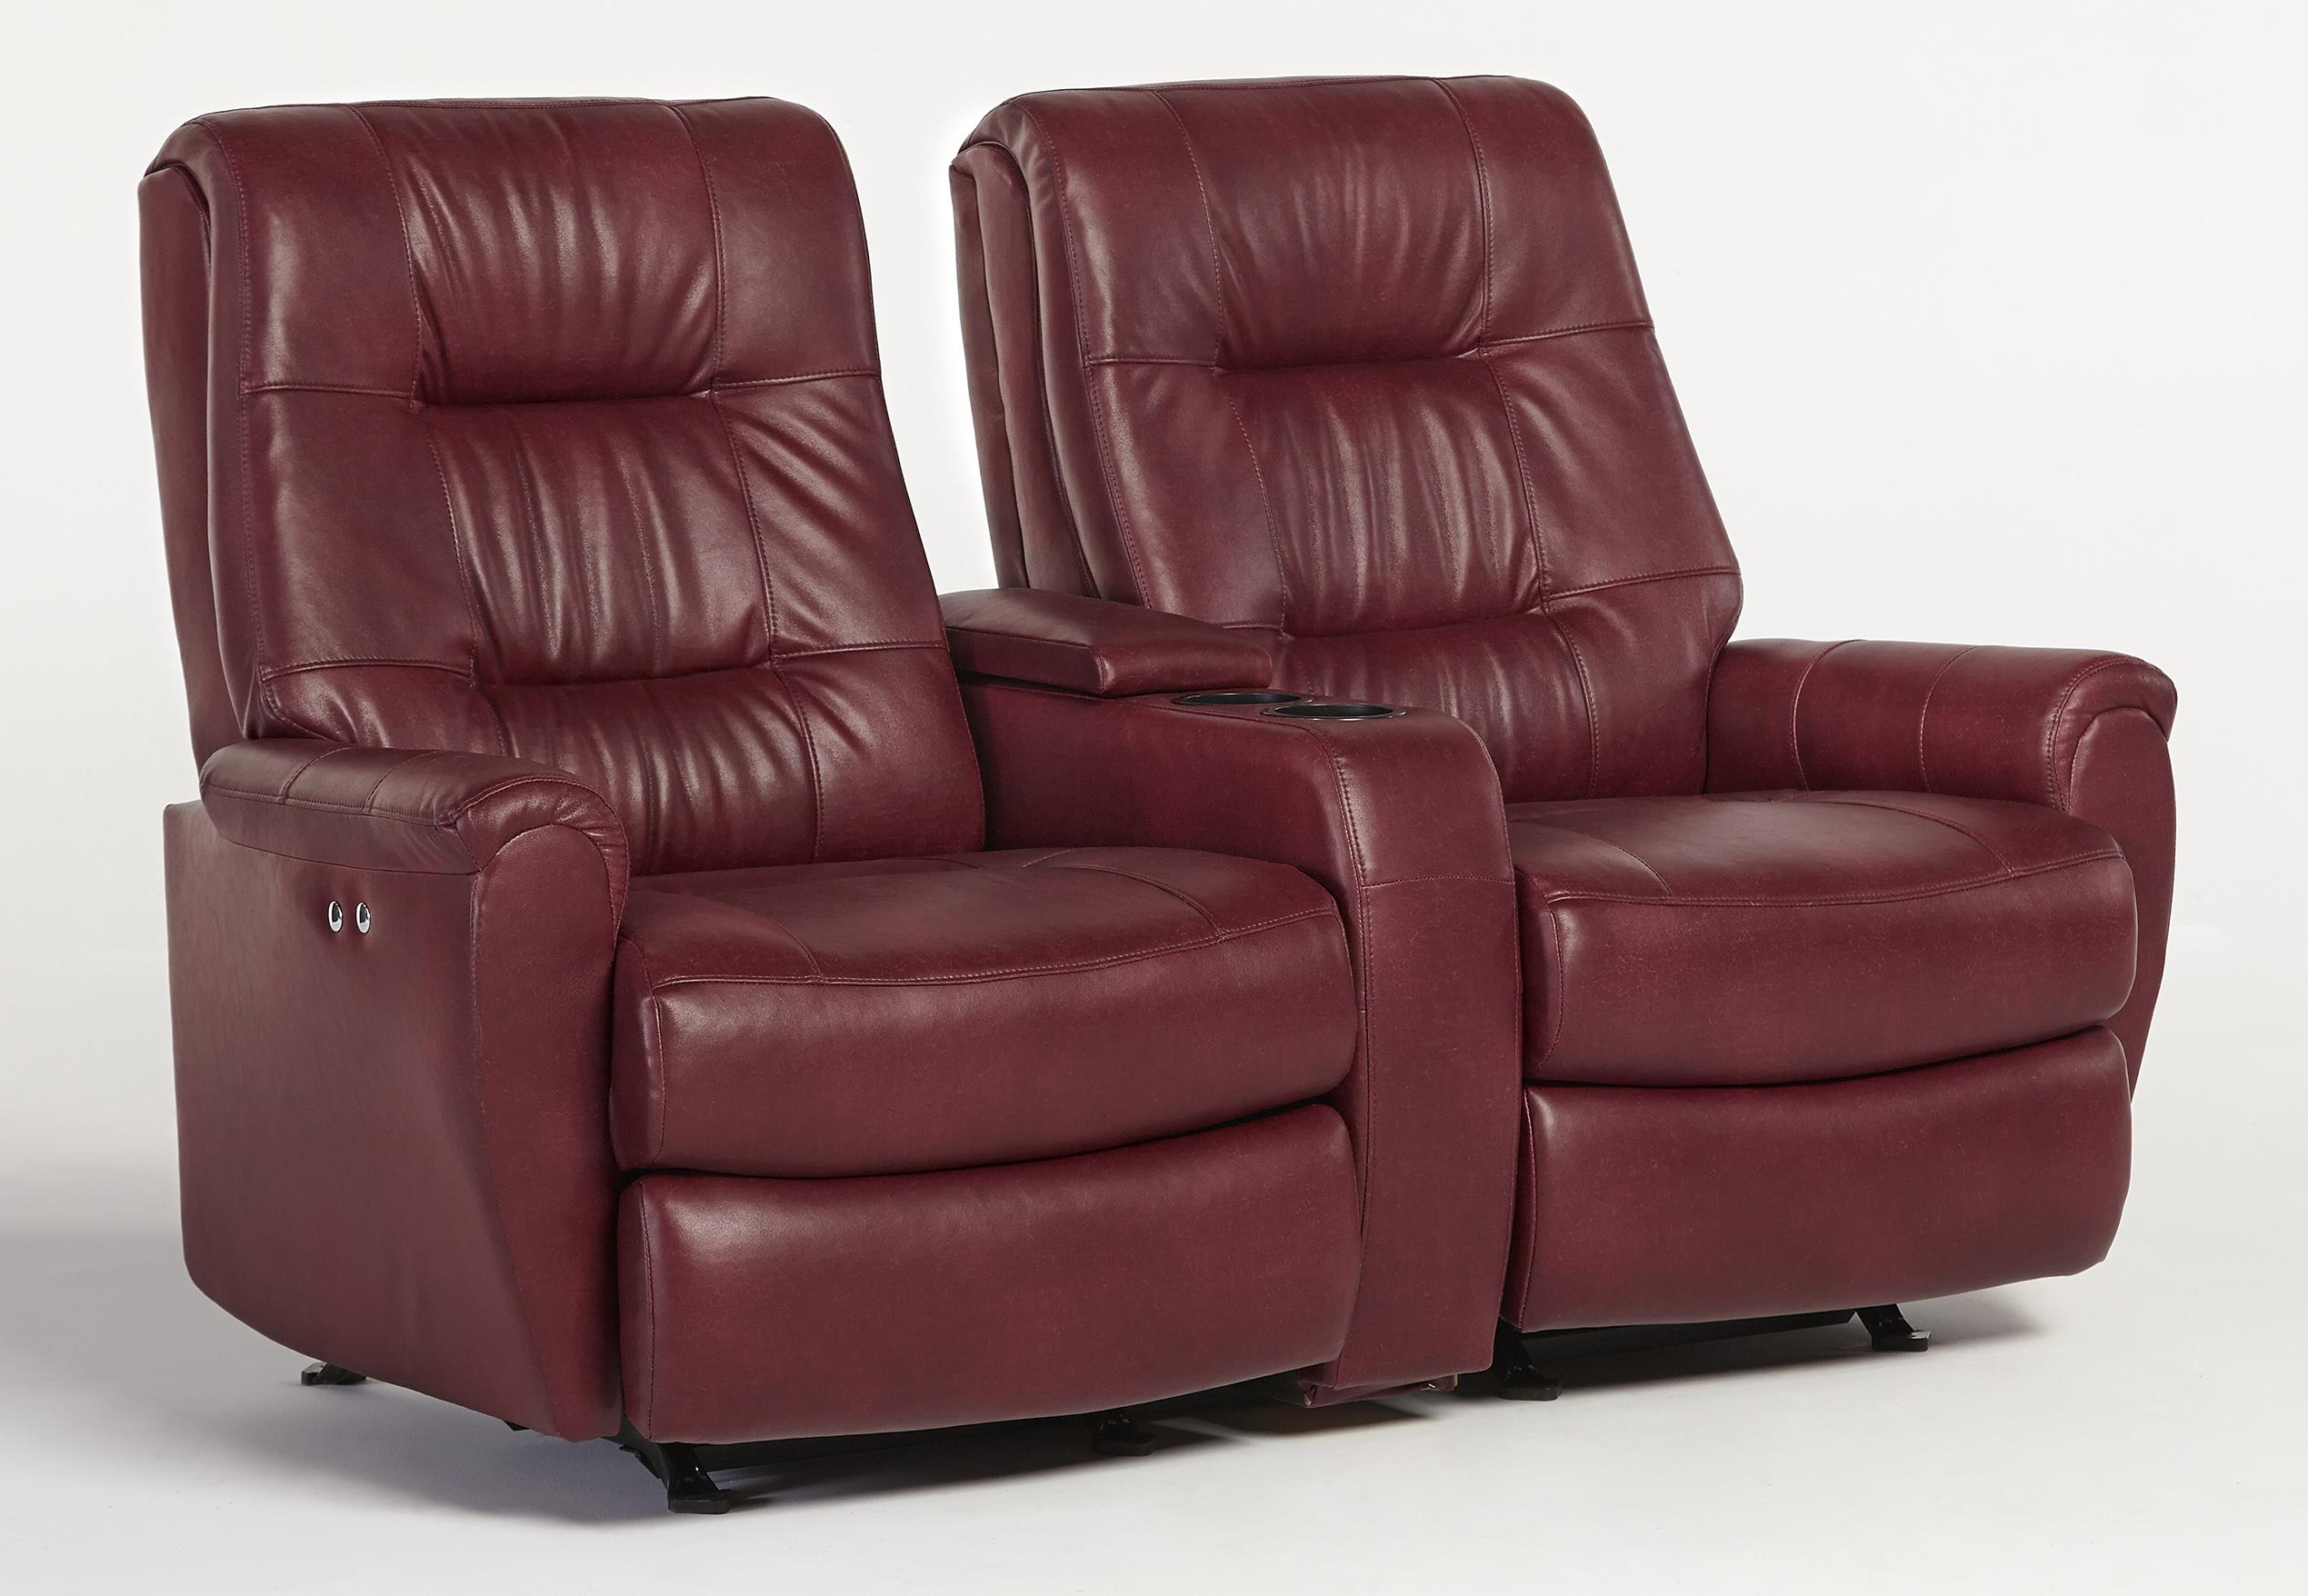 Small Scale Power Rocking Reclining Loveseat With Drink